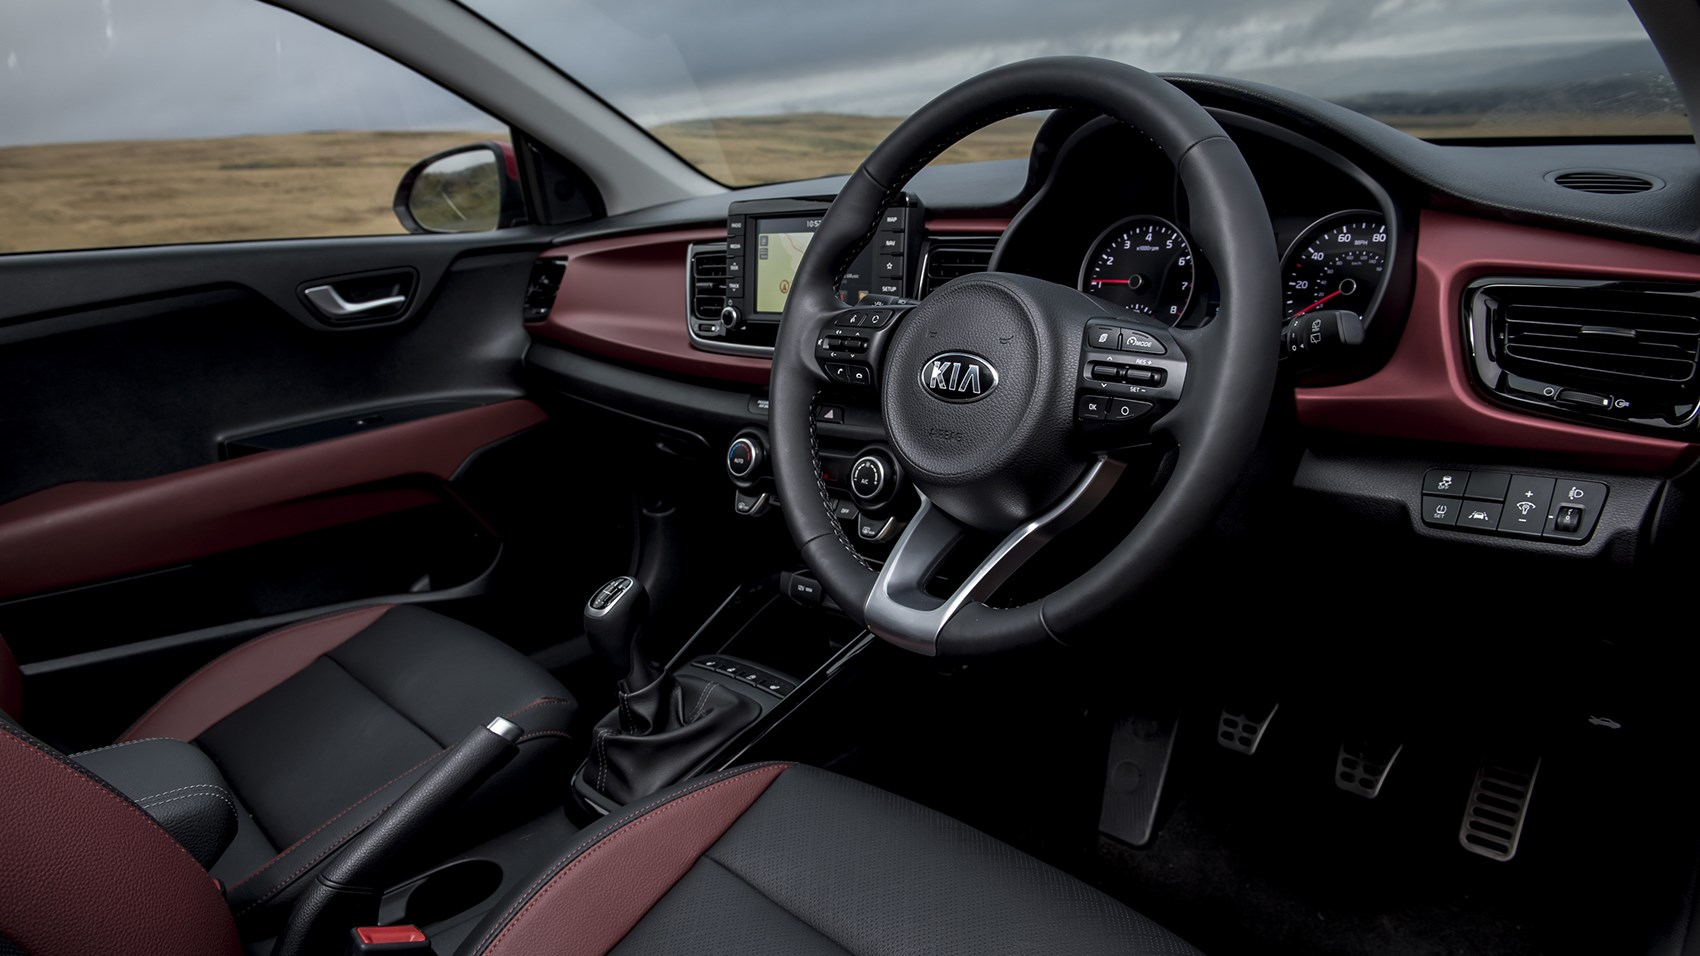 kia rio 3 1 0 t gdi 99bhp 2017 review by car magazine. Black Bedroom Furniture Sets. Home Design Ideas